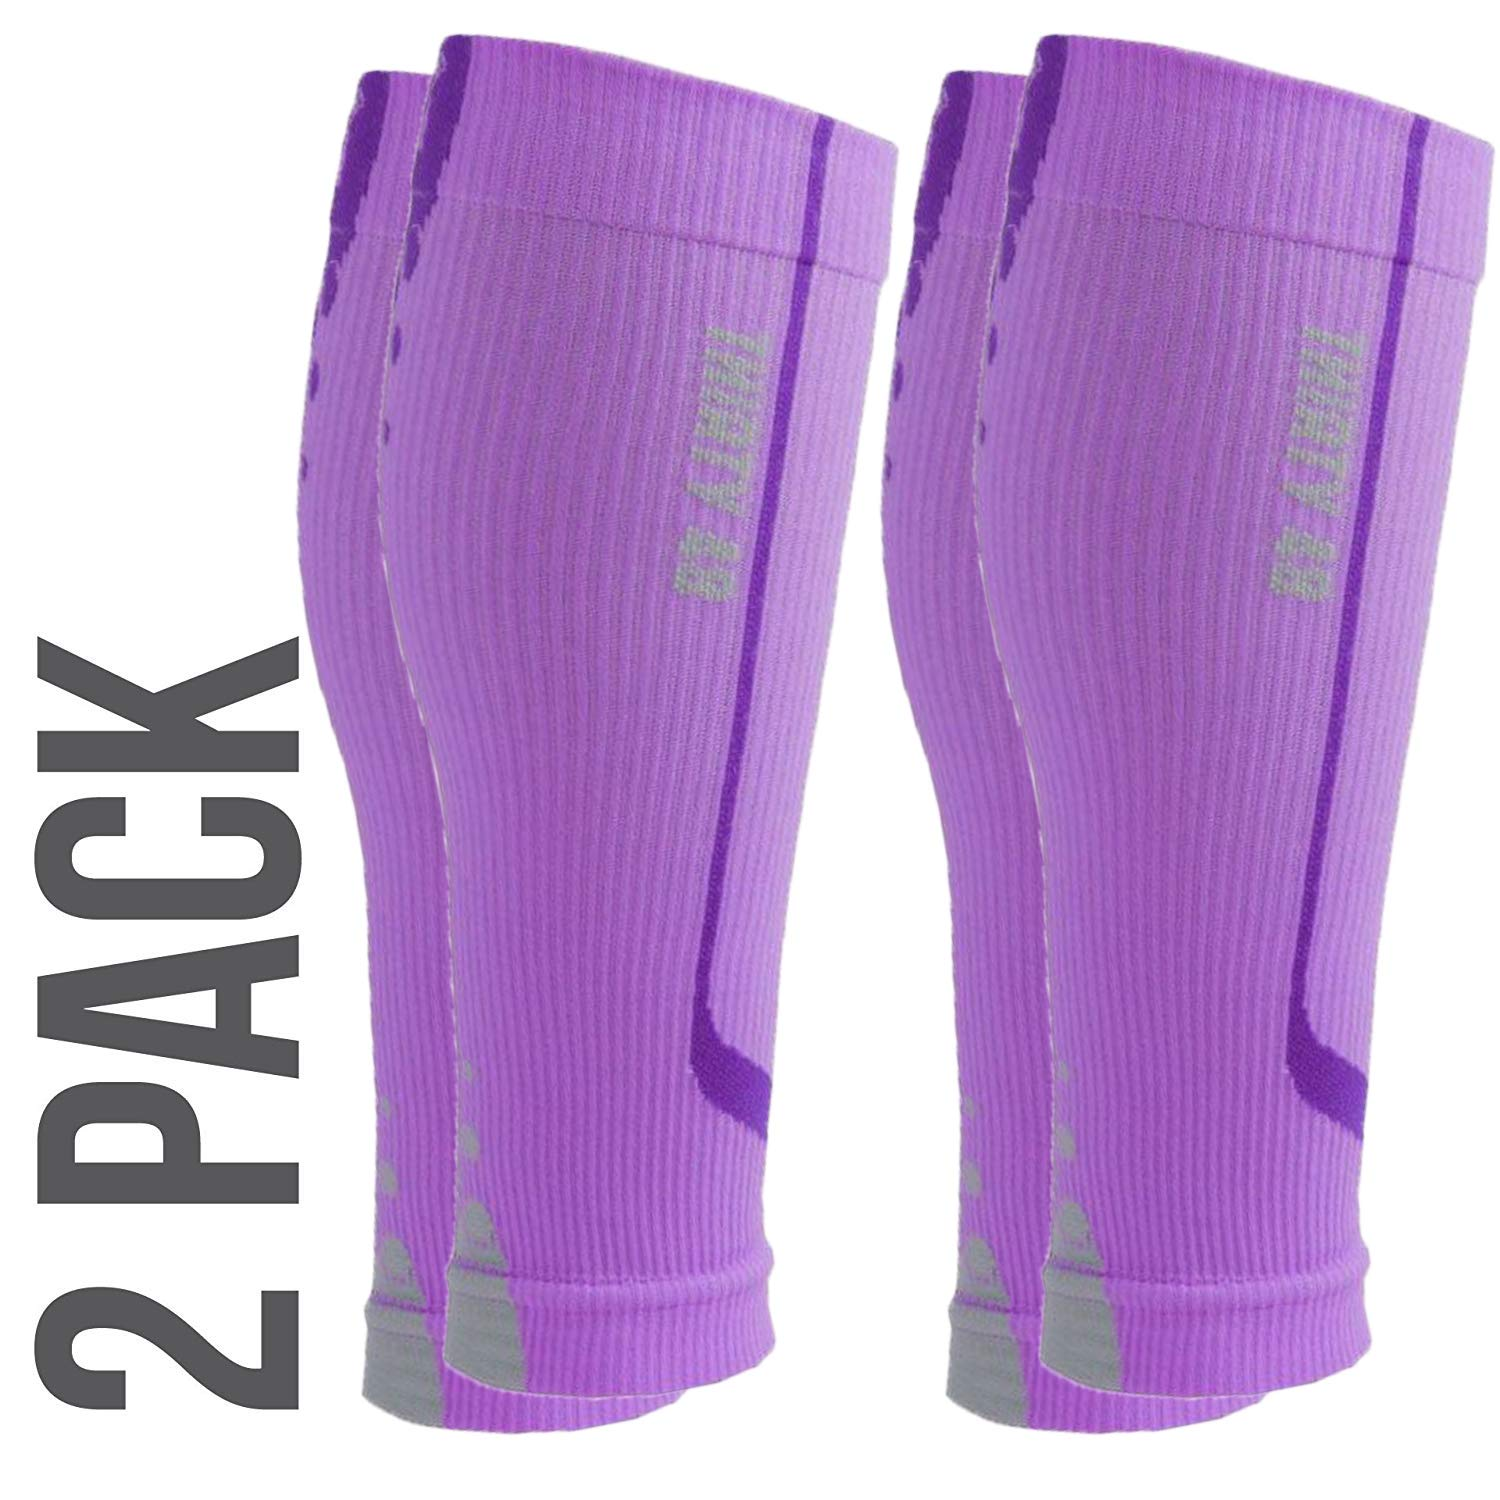 Graduated Calf Compression Sleeves by Thirty48 | 10-20 OR 20-30 mmHg | Maximize Faster Recovery by Increasing Oxygen to Muscles (Large // 17.3-19 Inch Upper Calf, [2 Pairs] Purple) by Thirty 48